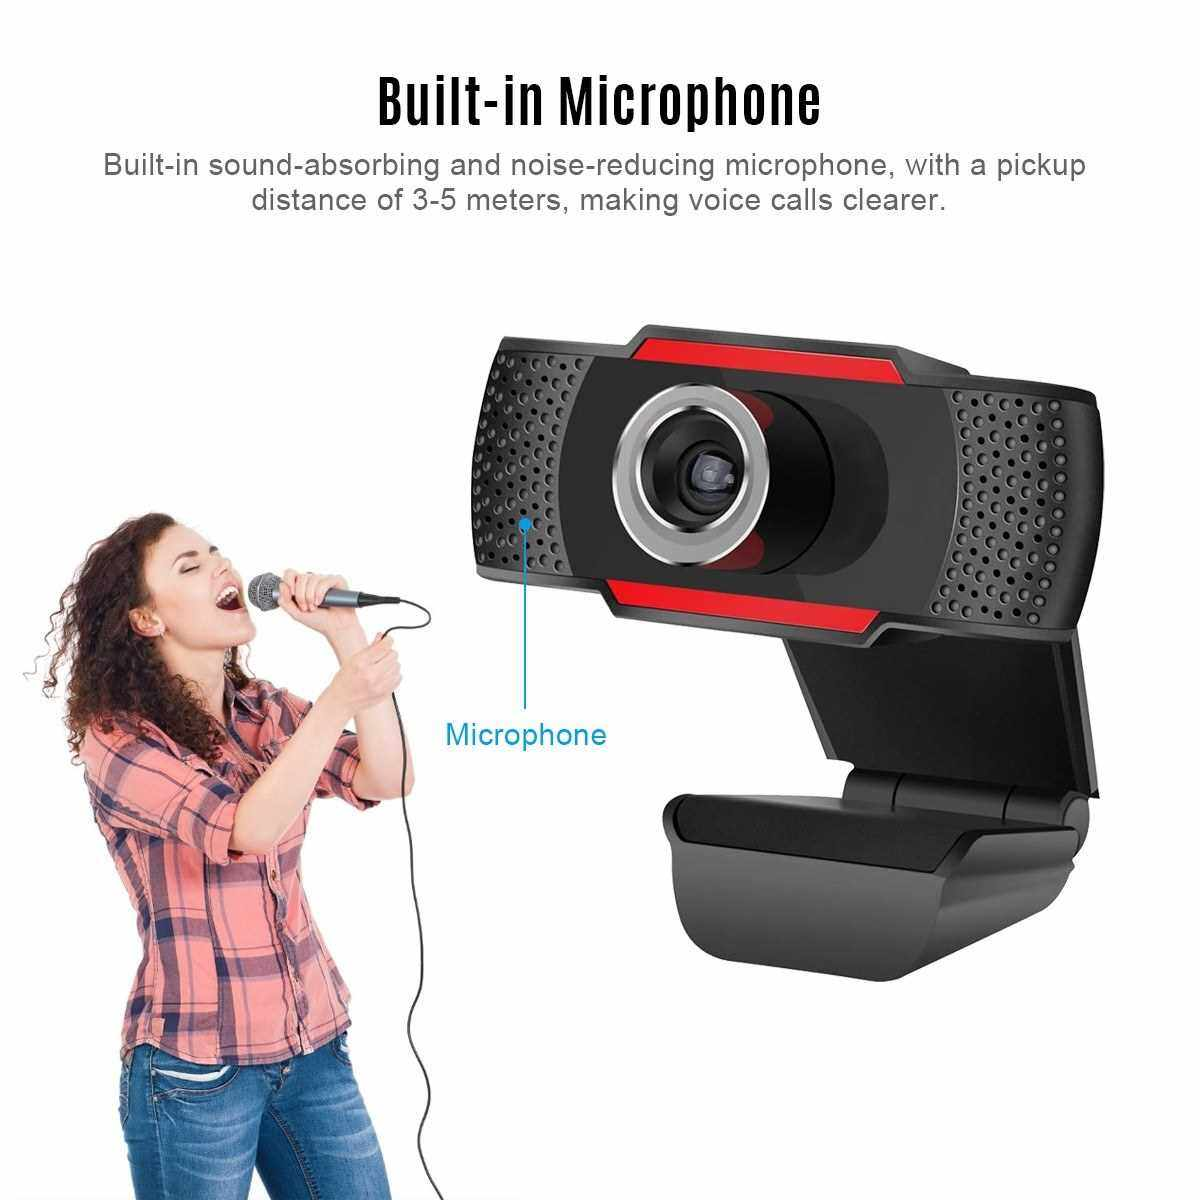 Video Conference Camera 720P HD Webcam Computer Camera with Noise Reduction Microphone USB Plug & Play for Video Meeting Online Training Teaching (Black)